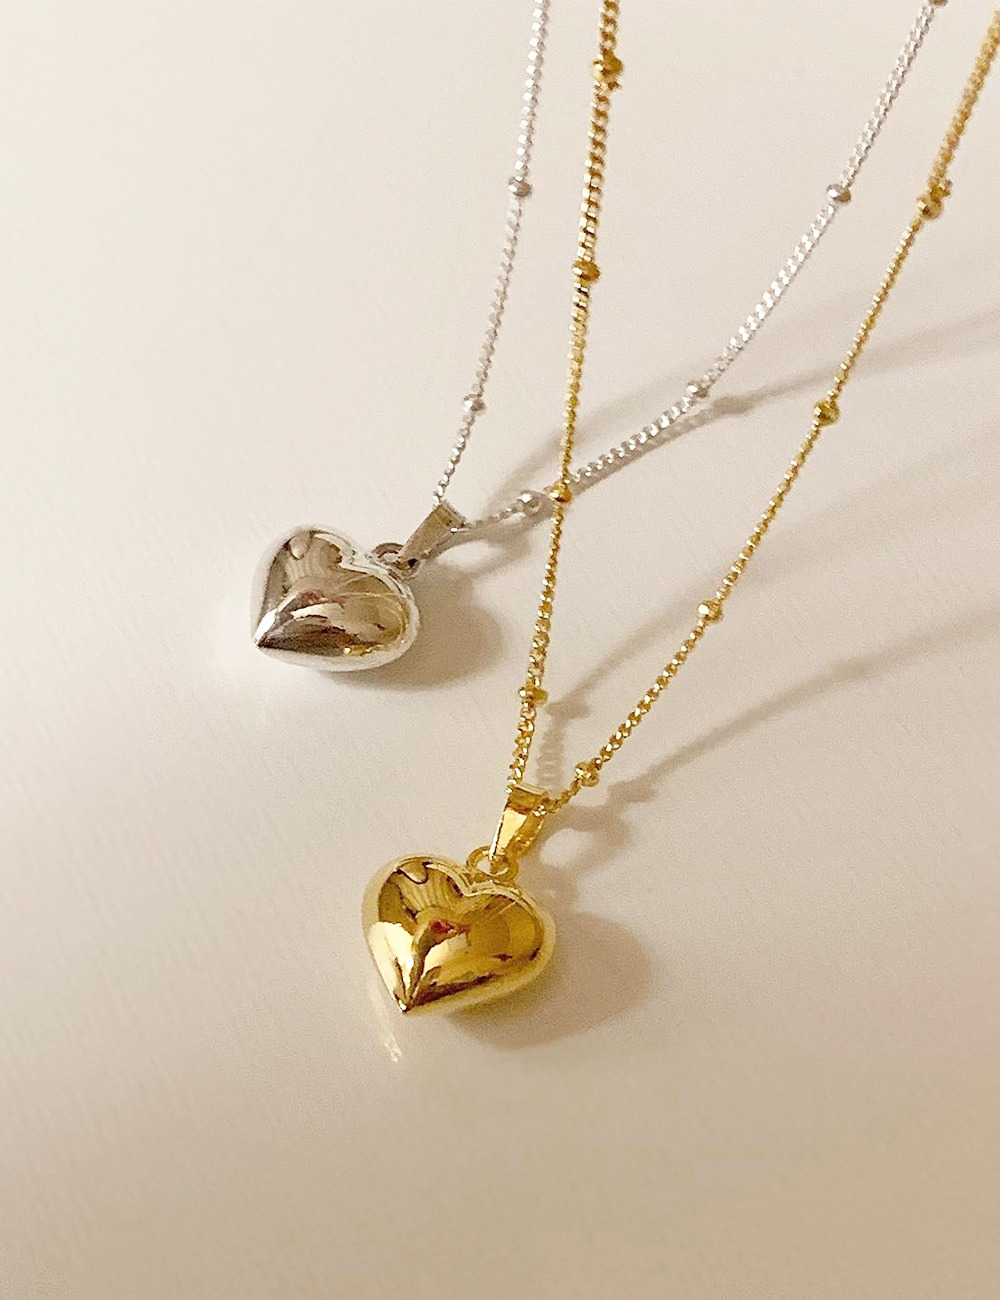 (silver 92.5) Romance necklace